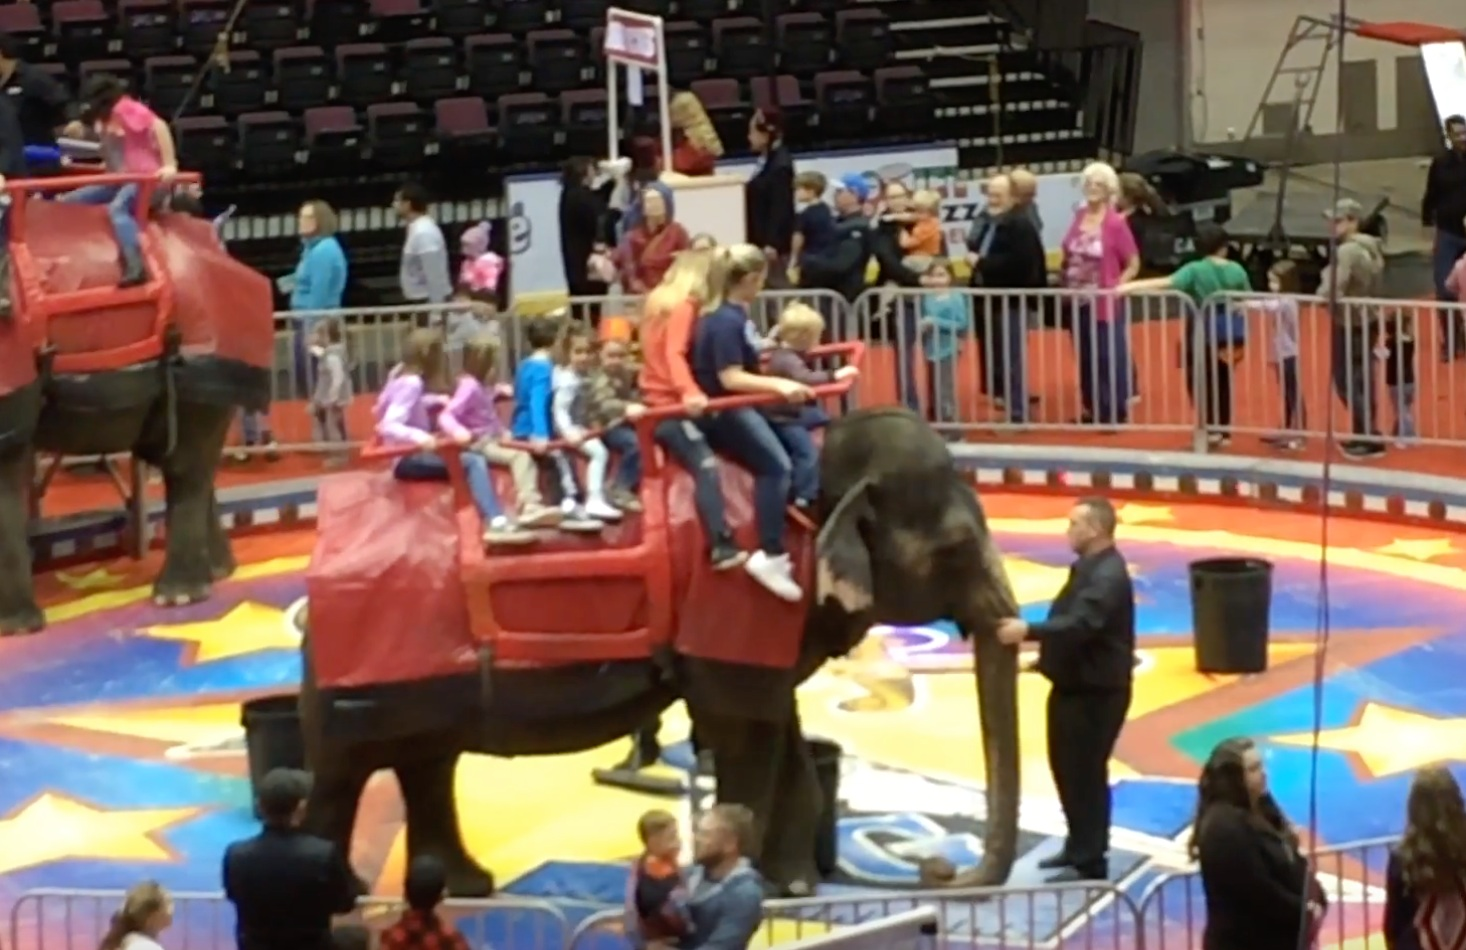 A circus elephant is forced to give people rides